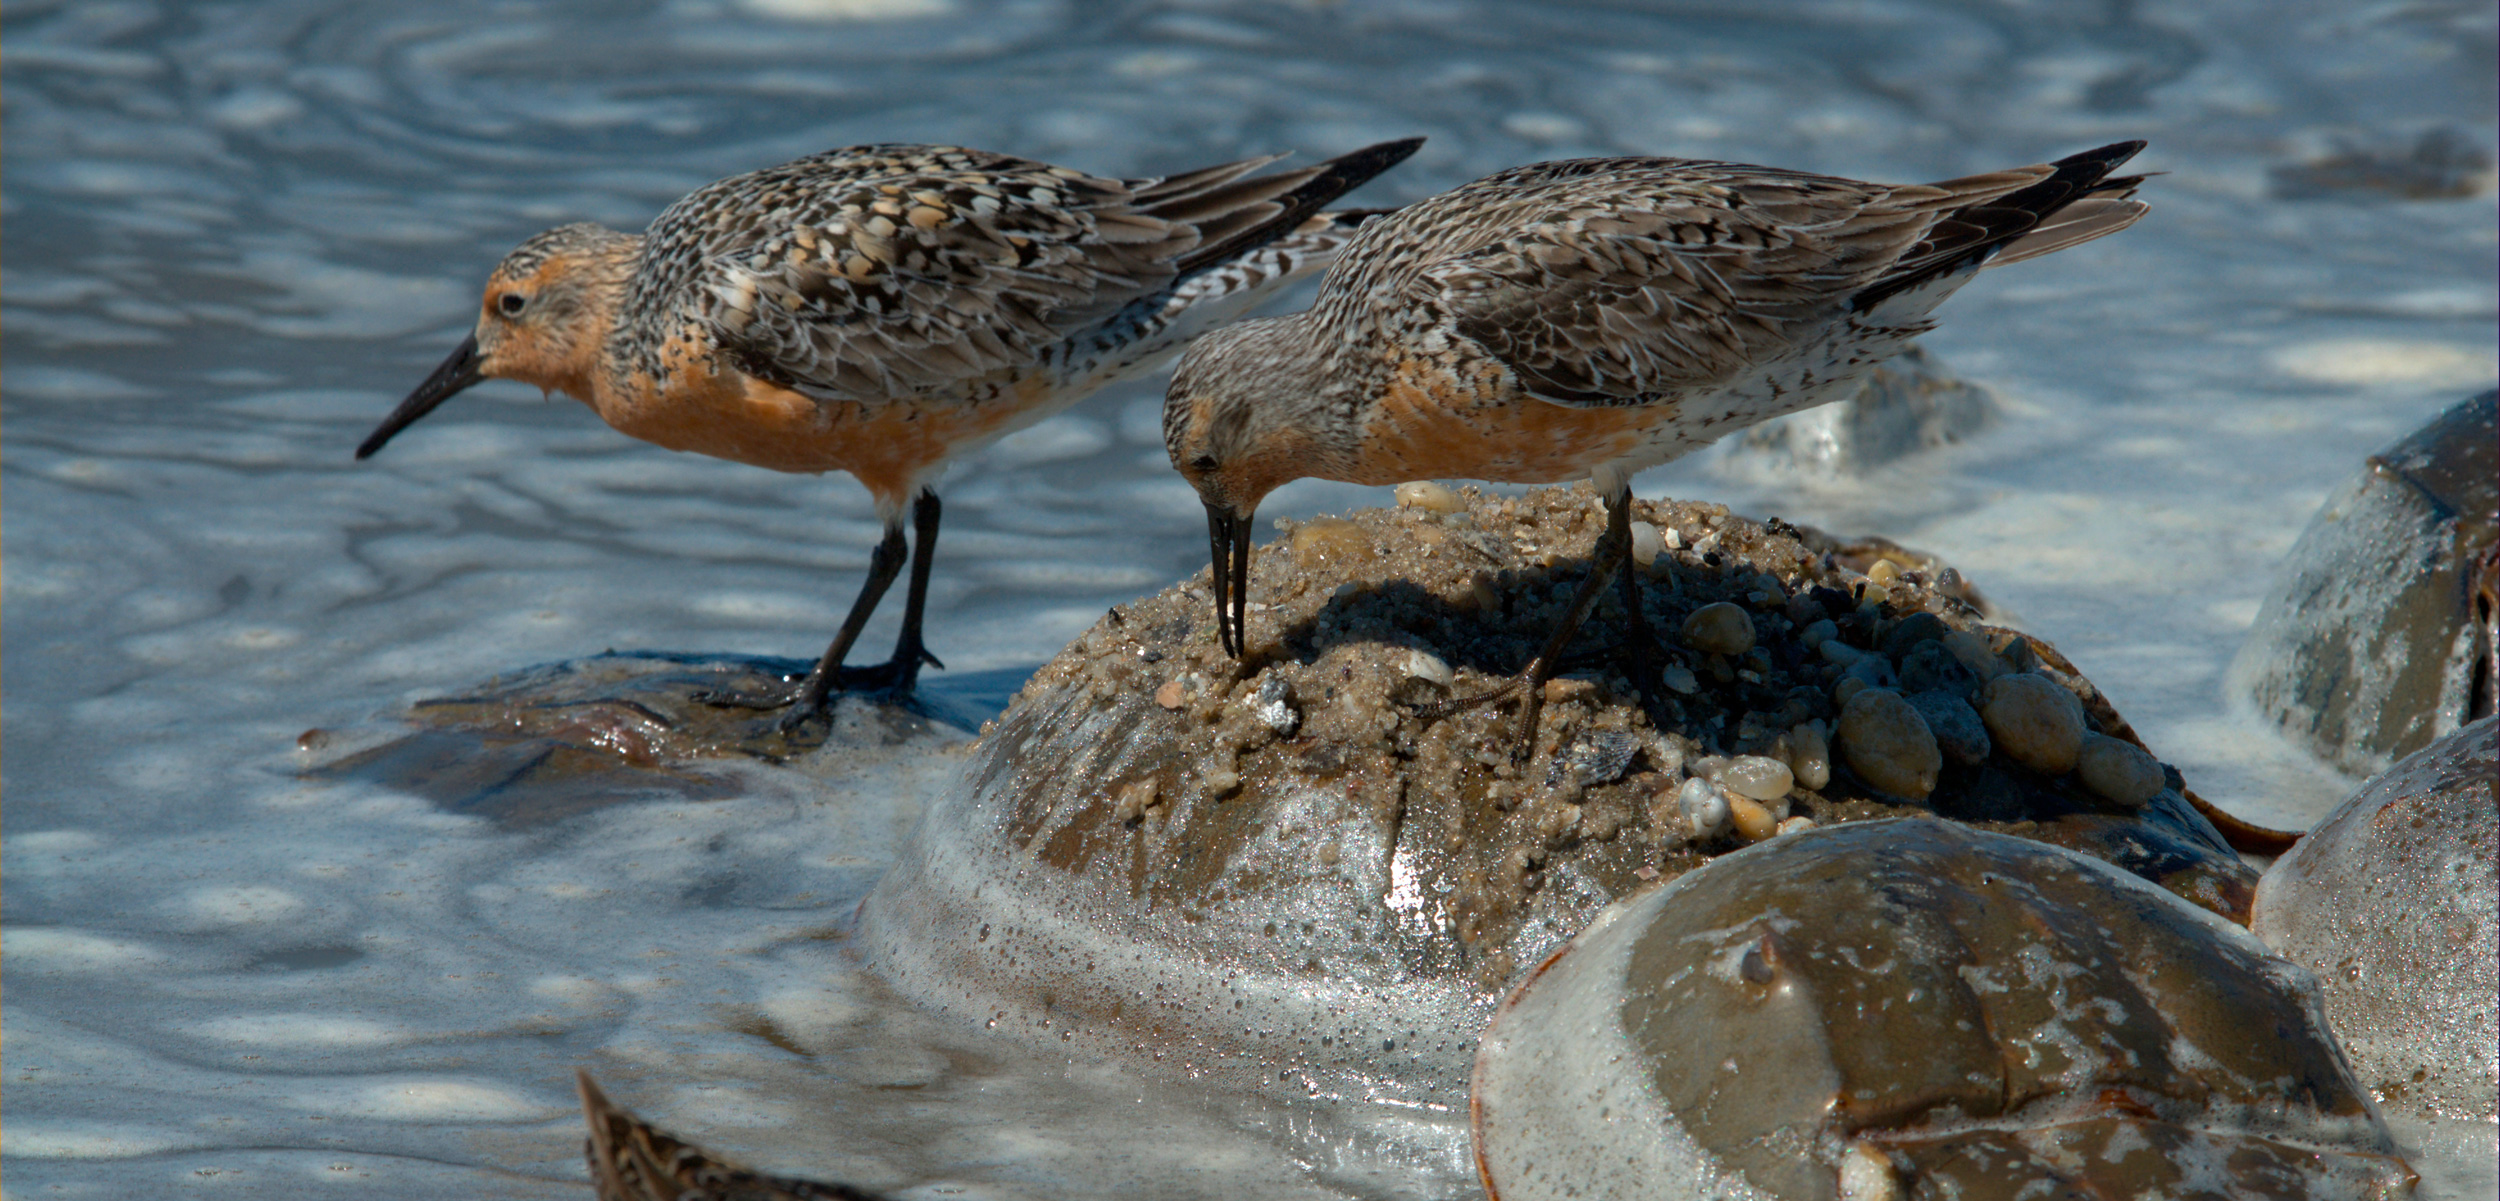 Rufa red knots feeding on the backs of Atlantic horseshoe crabs